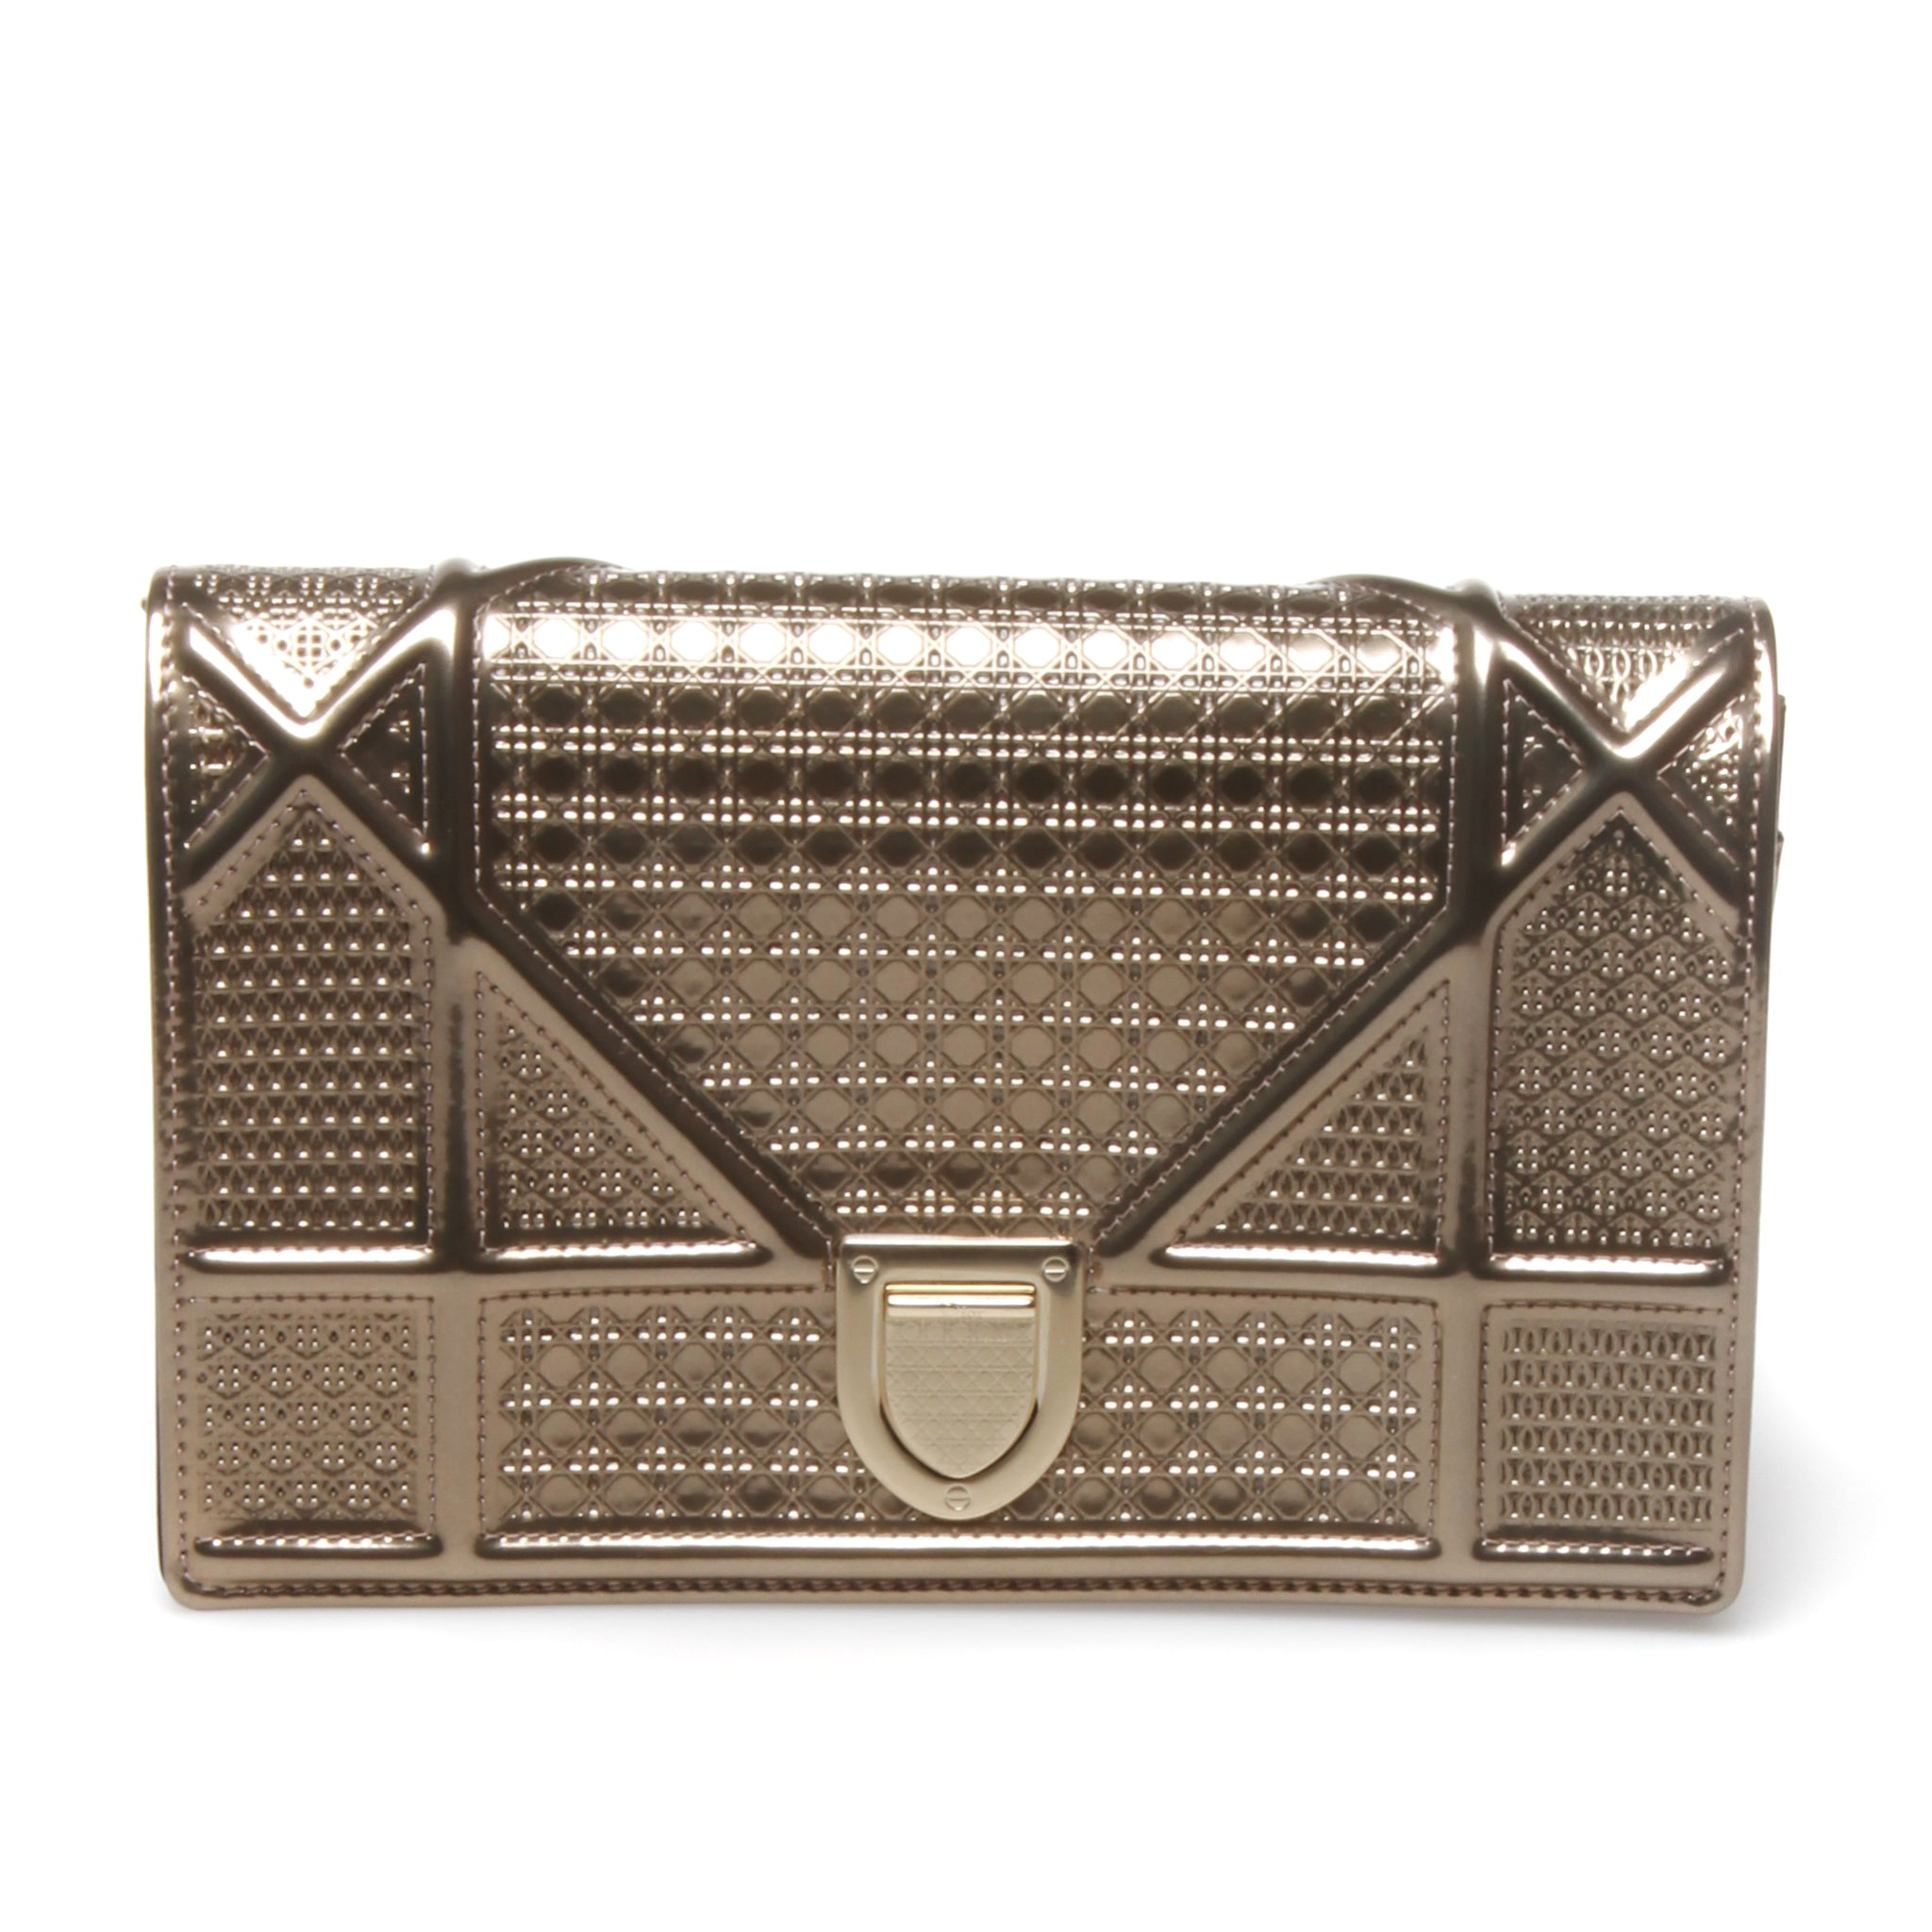 Christian Dior Clutch Bag